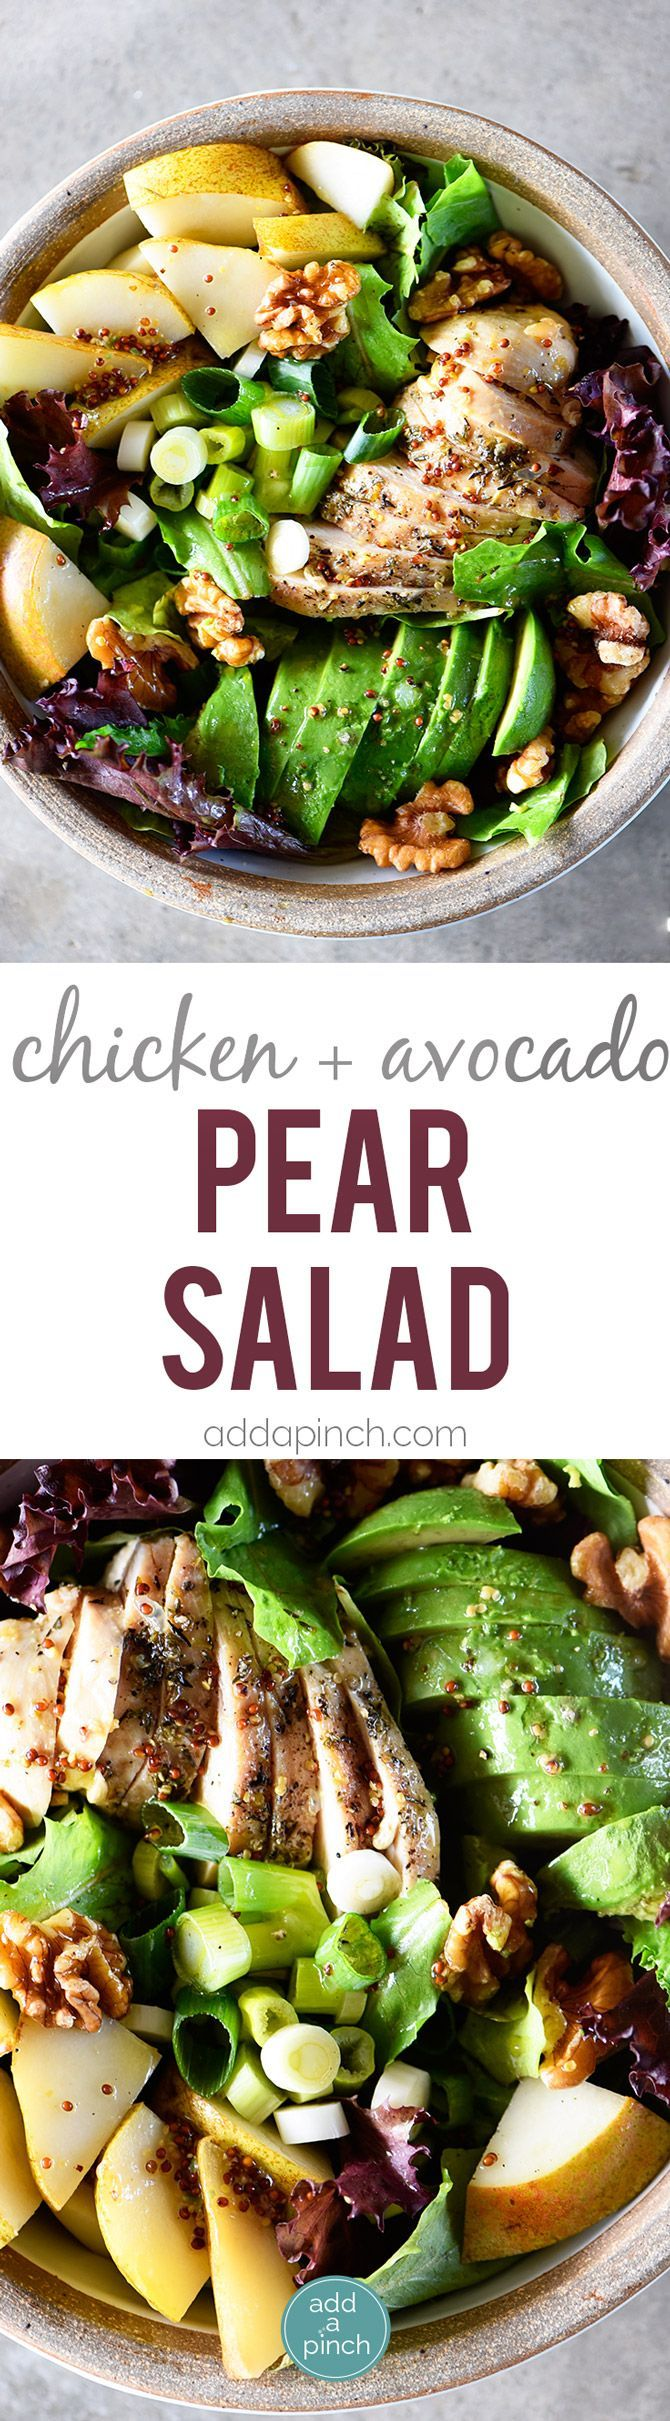 Fall Chicken Avocado Pear Salad Recipe - This salad makes for a delicious fall salad recipe! Filled with chicken, avocado, pears, walnuts, and topped with a Honey Mustard Dressing! // addapinch.com